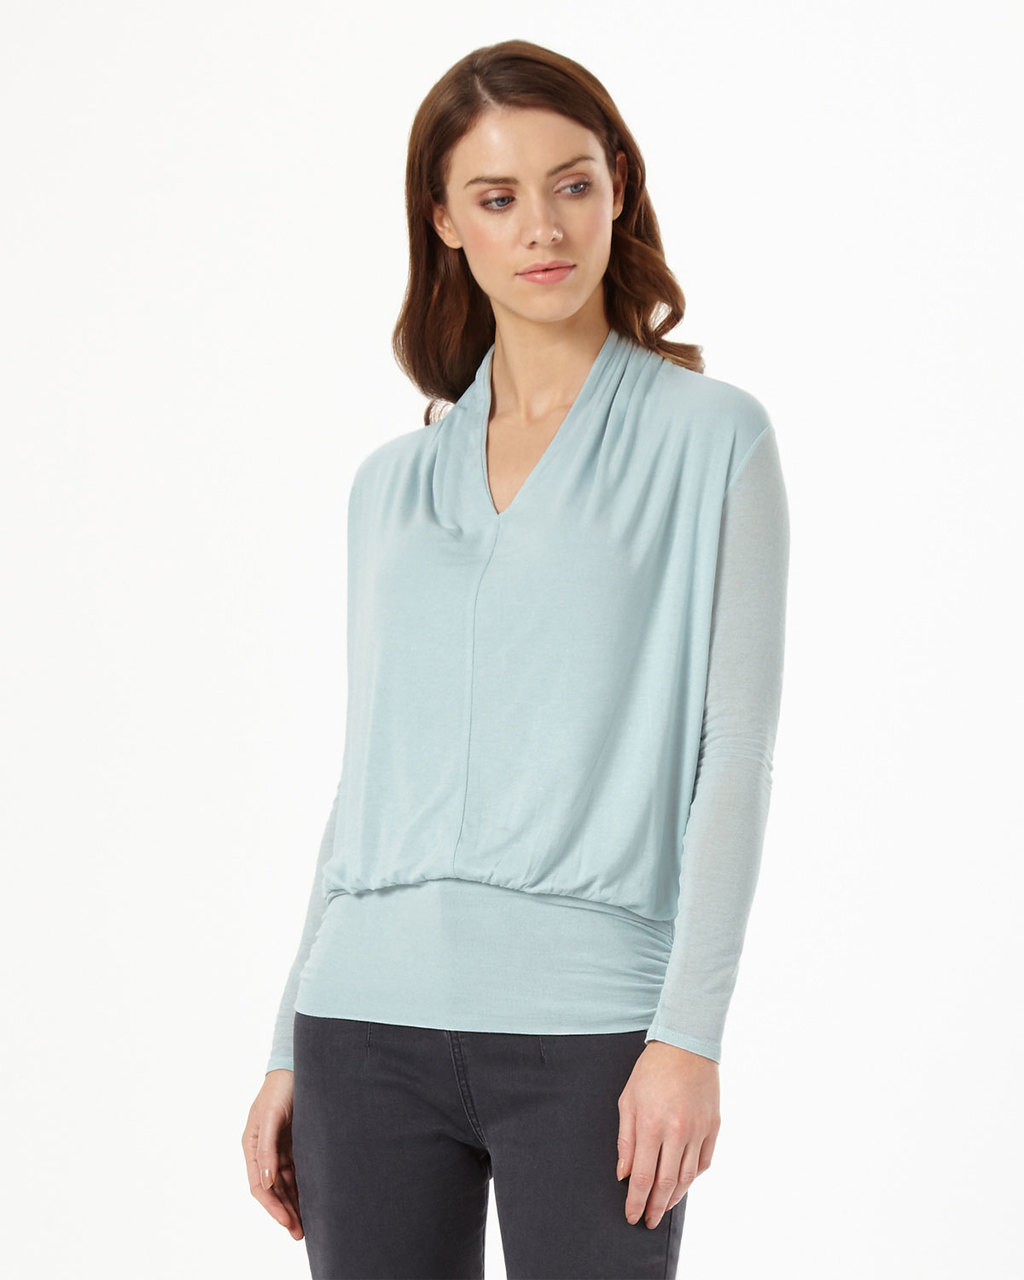 Gwyneth Top - neckline: v-neck; pattern: plain; hip detail: fitted at hip; predominant colour: pale blue; occasions: work; length: standard; style: top; fibres: polyester/polyamide - stretch; fit: body skimming; shoulder detail: flat/draping pleats/ruching/gathering at shoulder; sleeve length: long sleeve; sleeve style: standard; texture group: sheer fabrics/chiffon/organza etc.; pattern type: fabric; season: s/s 2016; wardrobe: highlight